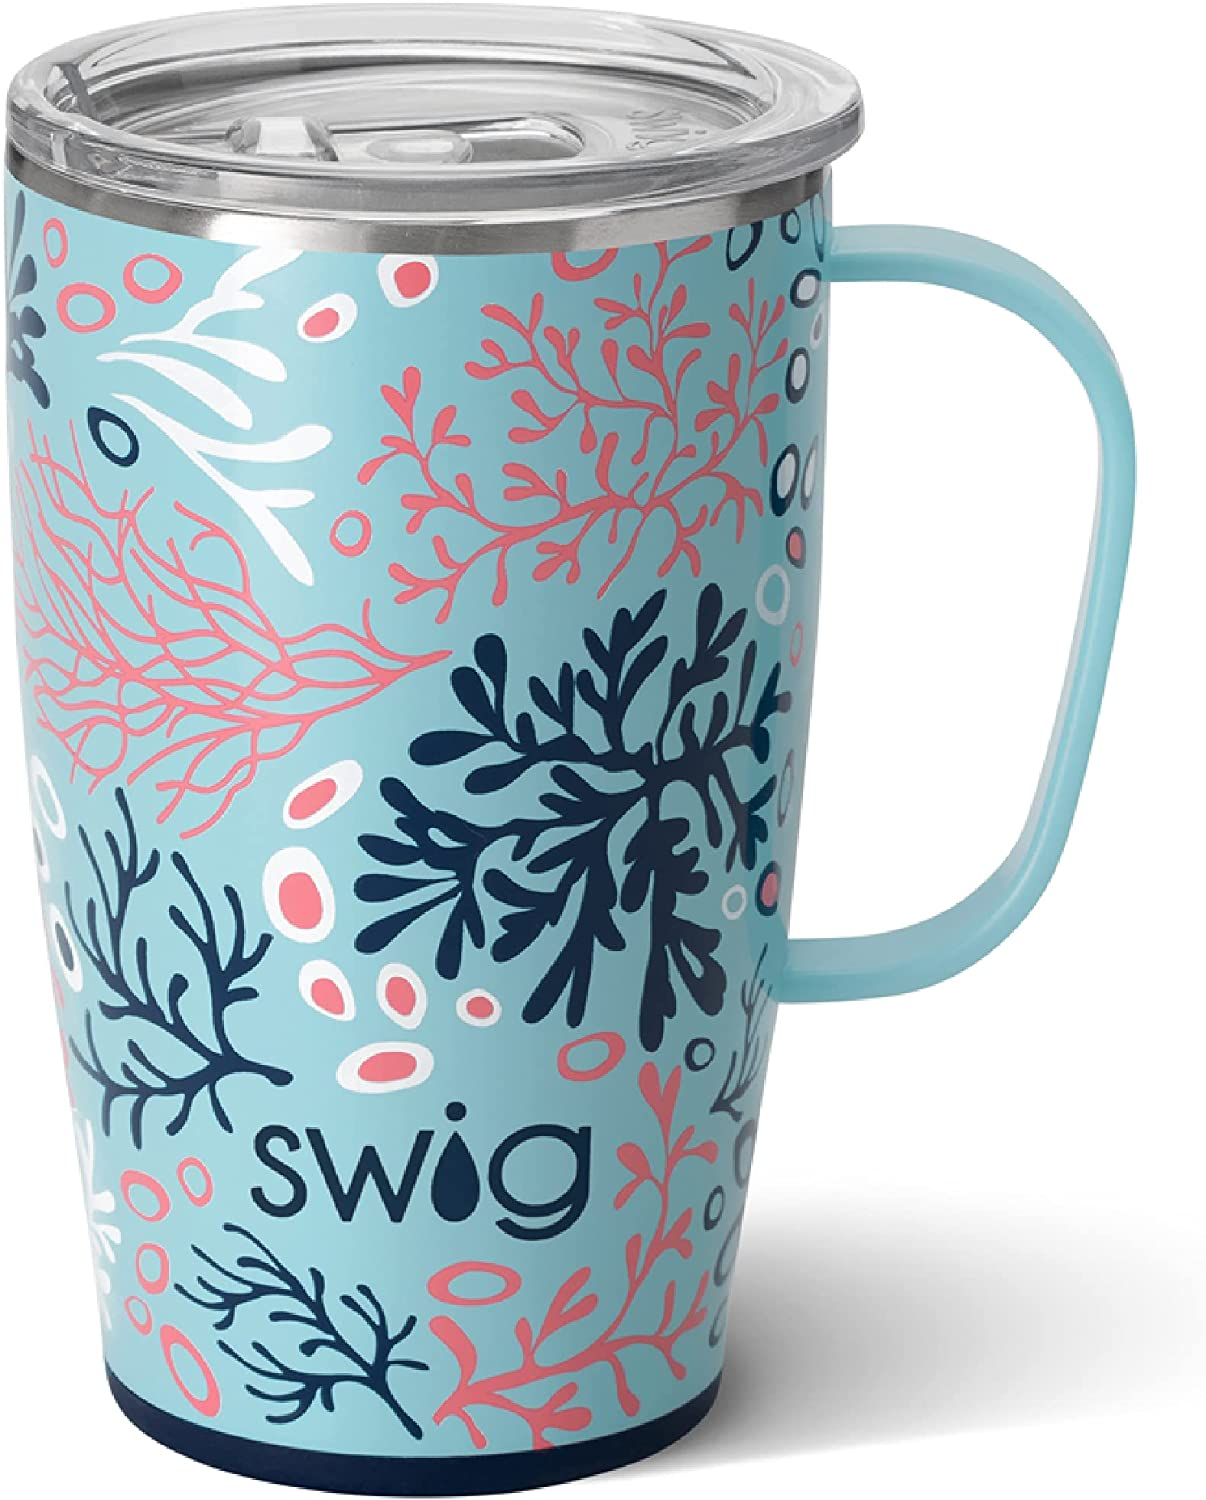 outlet Swig Life Save money 18oz Travel Mug with Handle Lid Steel Stainless and